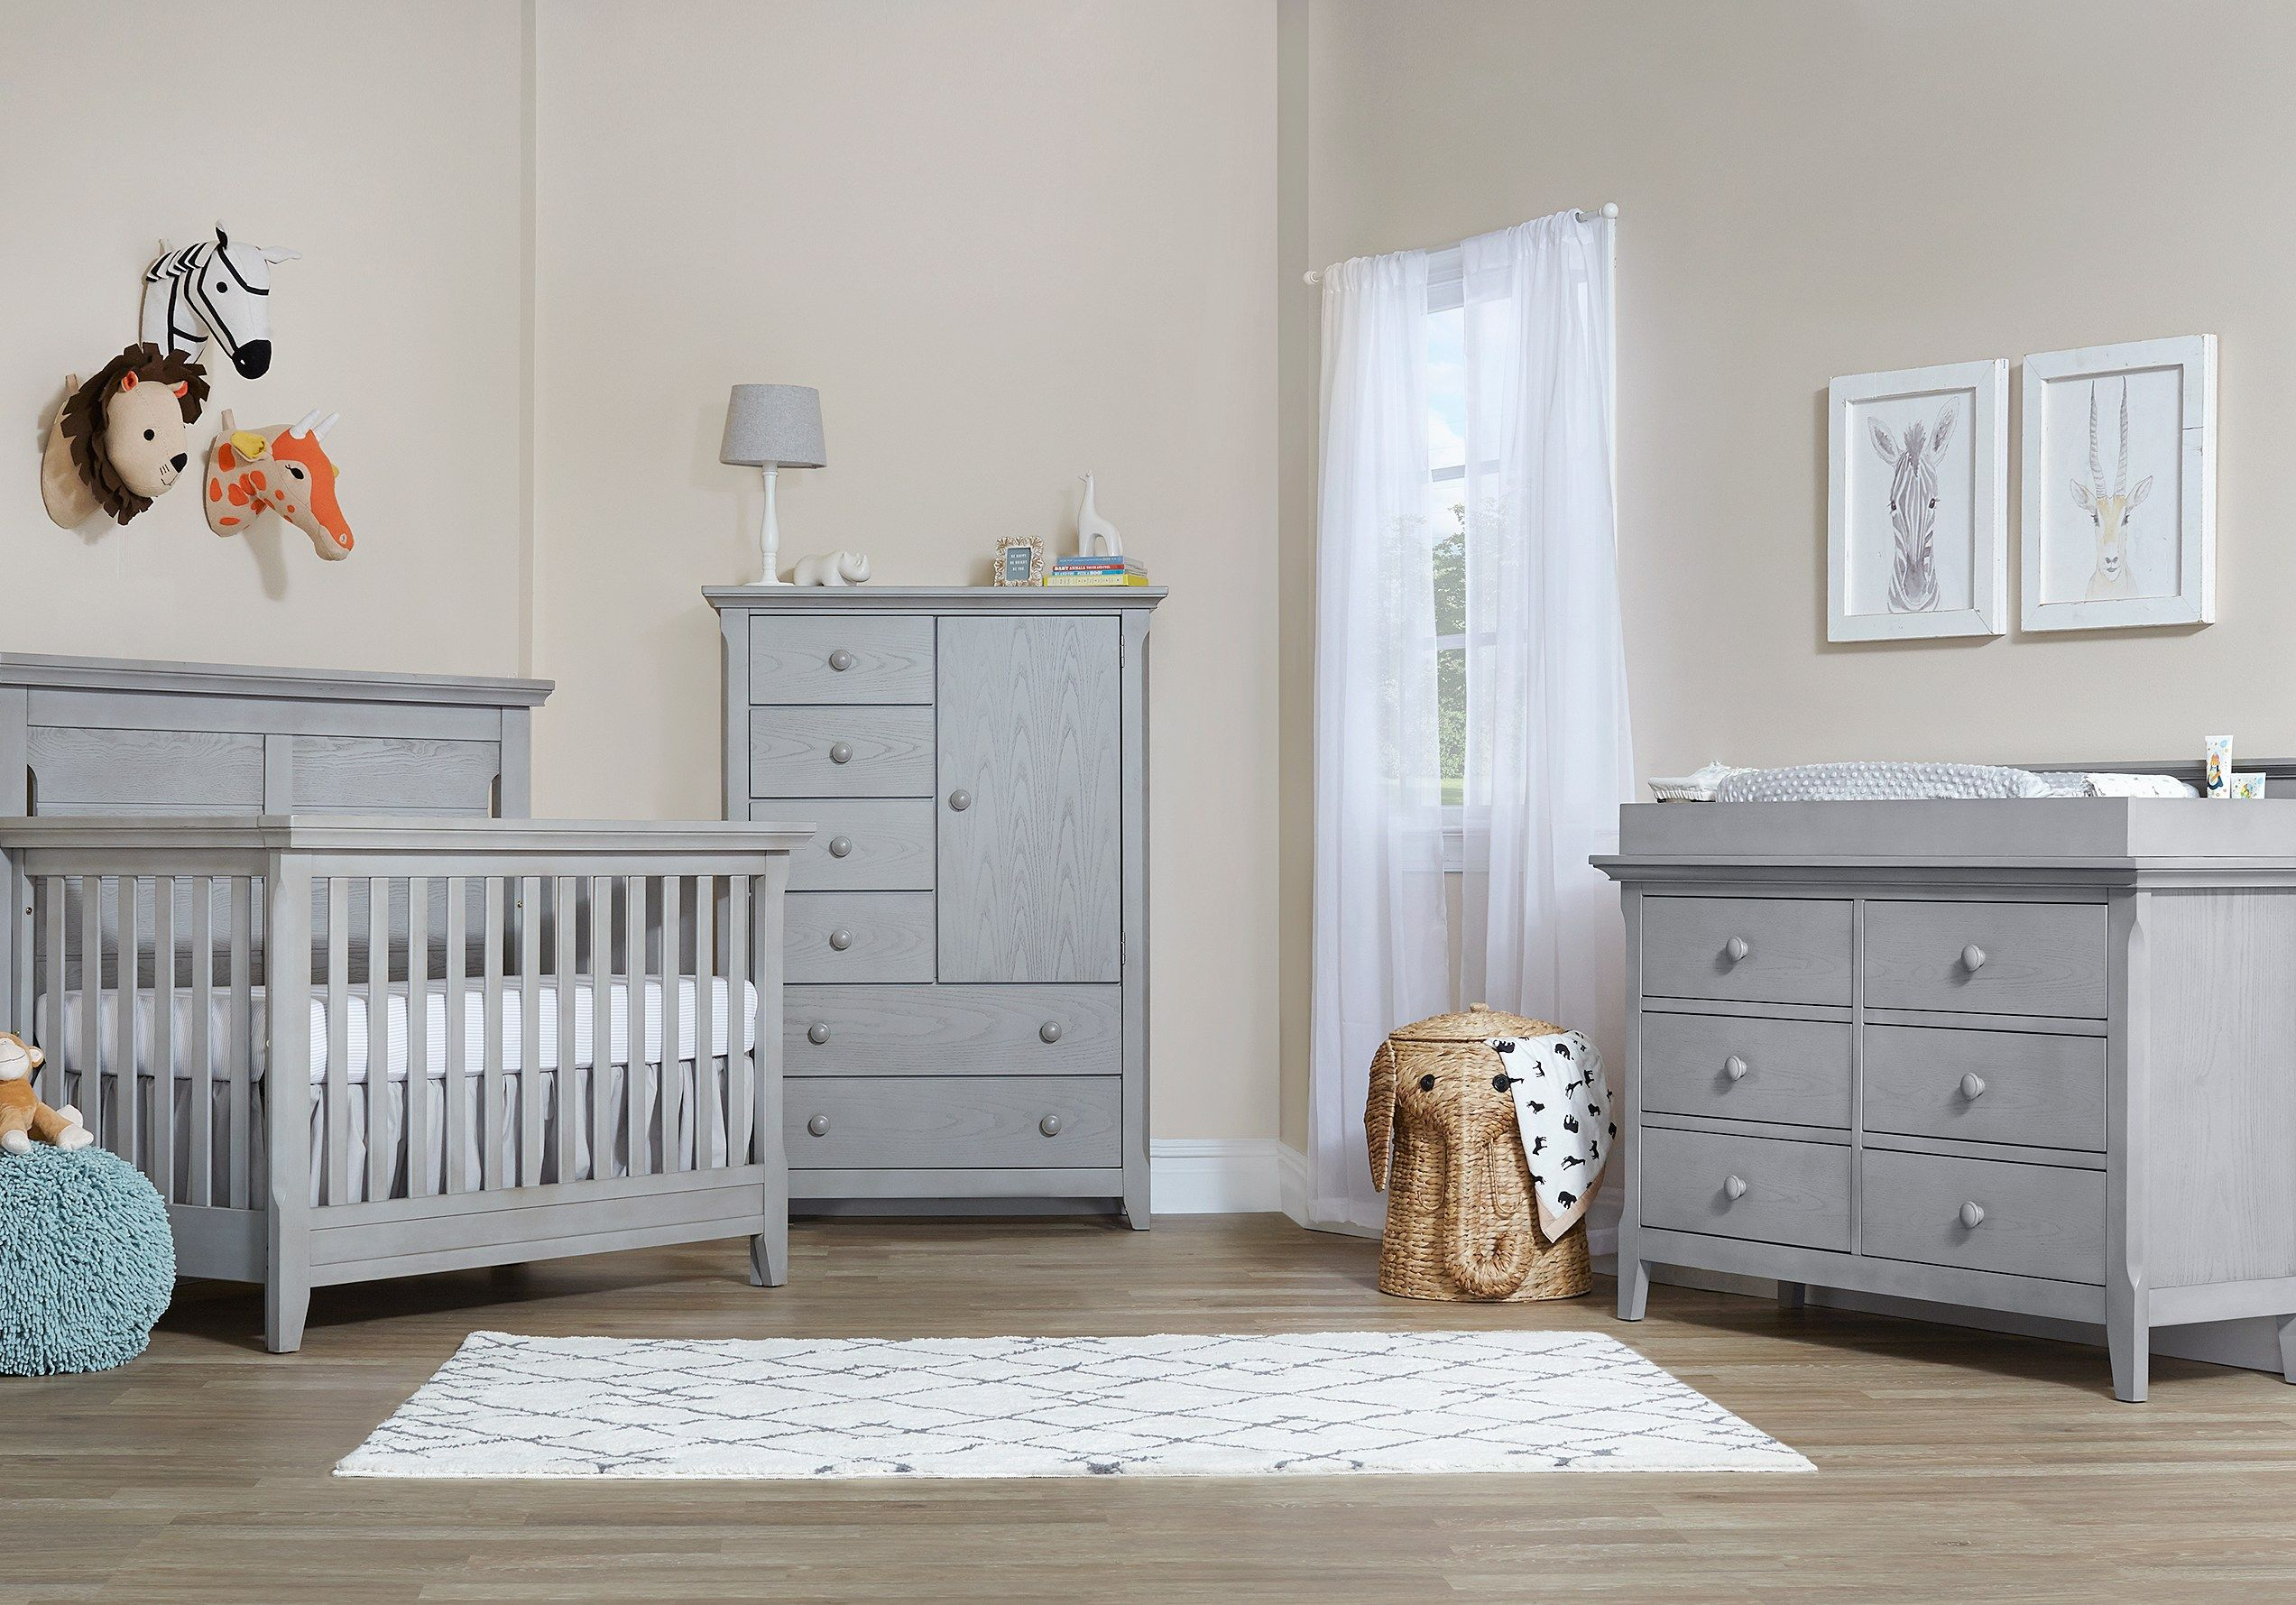 Baby Cache Overland Point Gray 4 Pc Nursery Bedroom Furniture Stores Baby Boy Nursery Bedding Nursery Furniture Sets